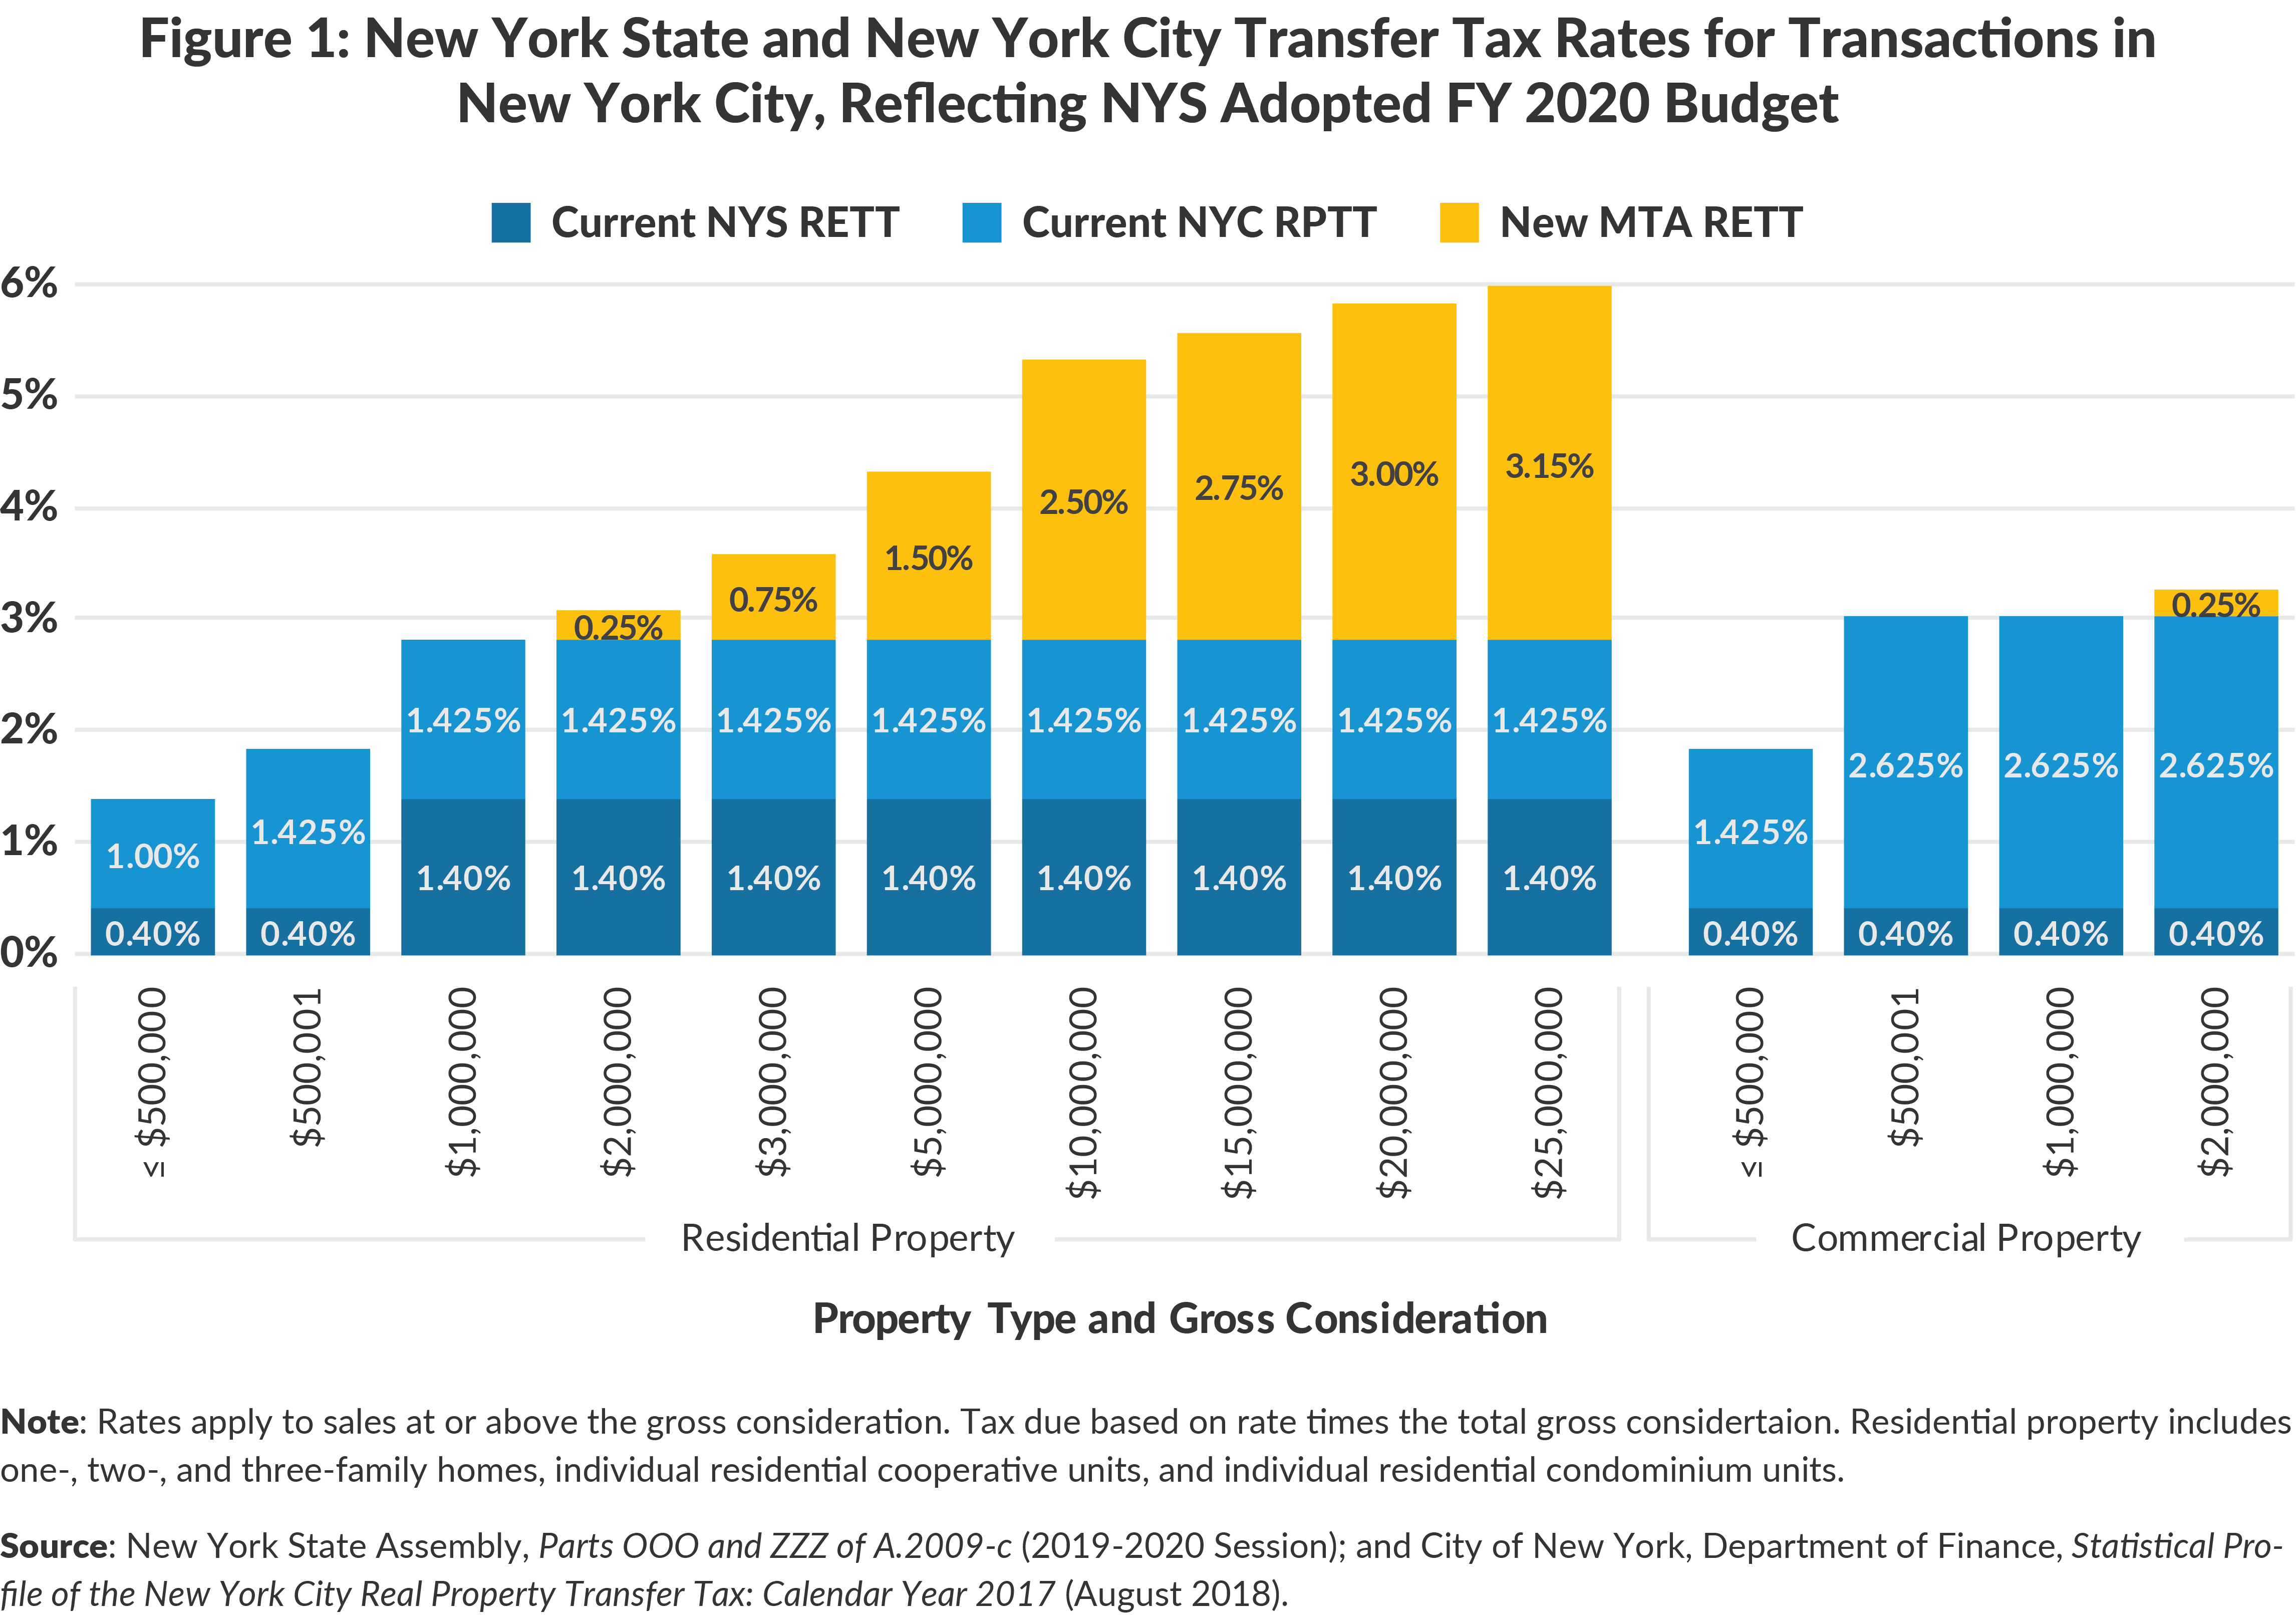 Figure 1: New York State and New York City Transfer Tax Rates for Transactions inNew York City, Reflecting NYS Adopted FY 2020 Budget